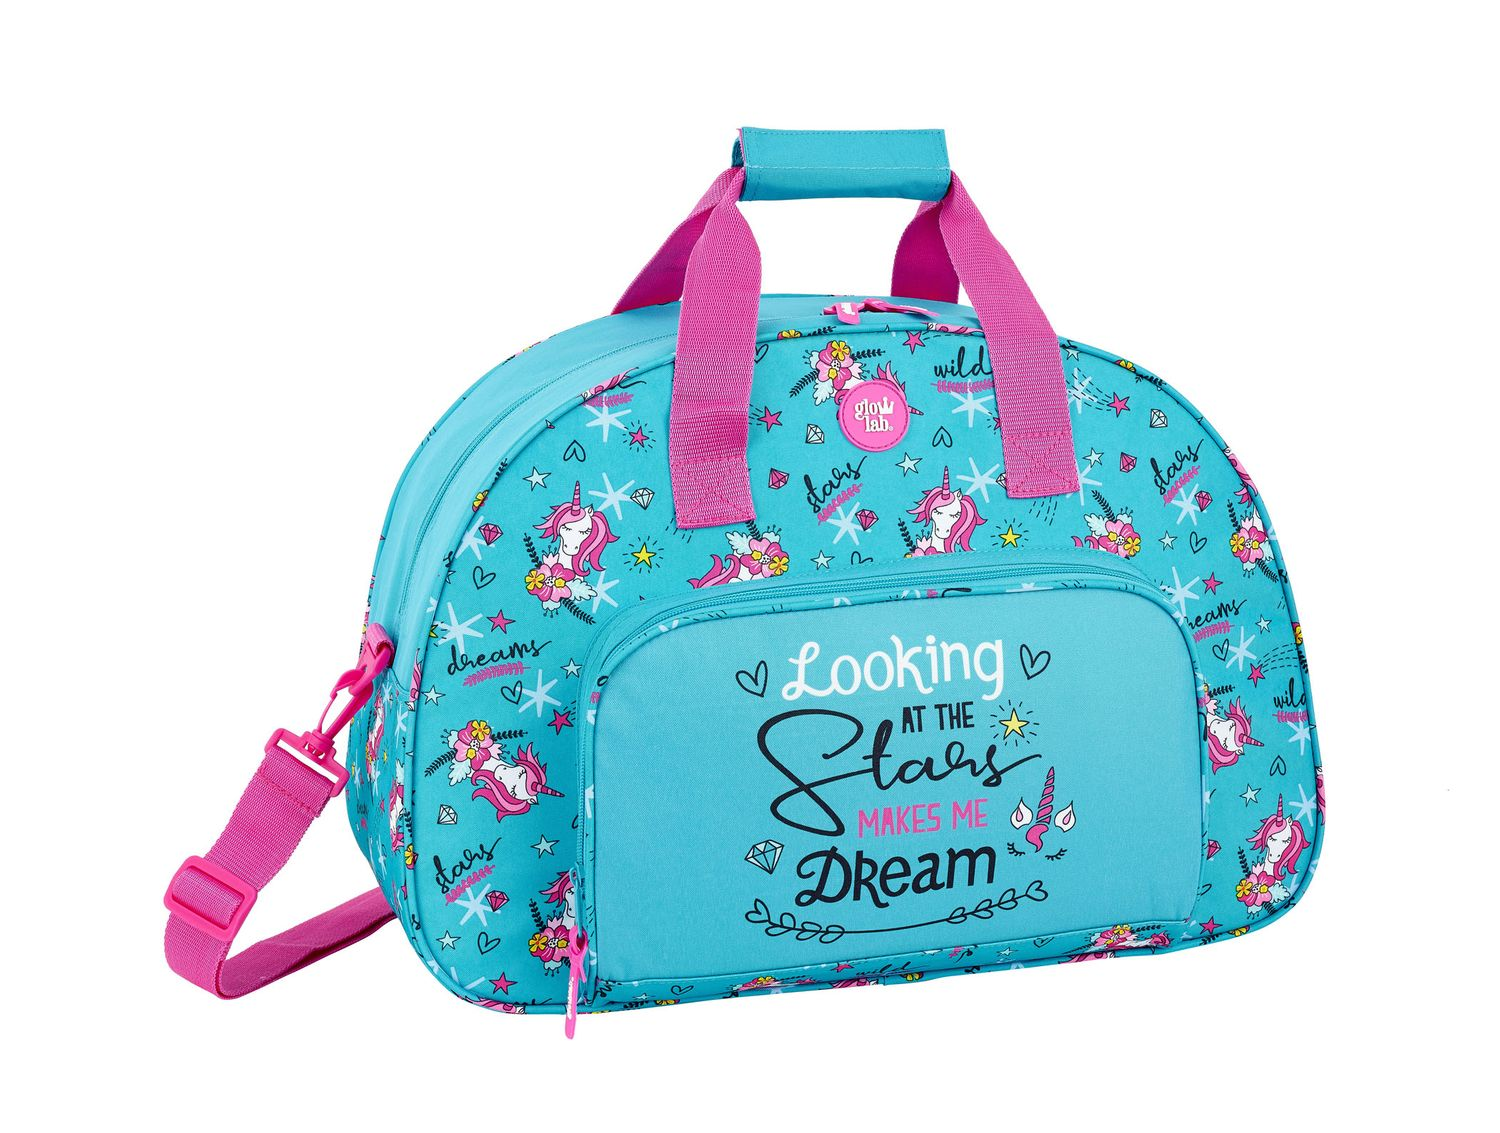 Travel Sports Bag 48 cm Glowlab DREAMS Unicorn – image 1